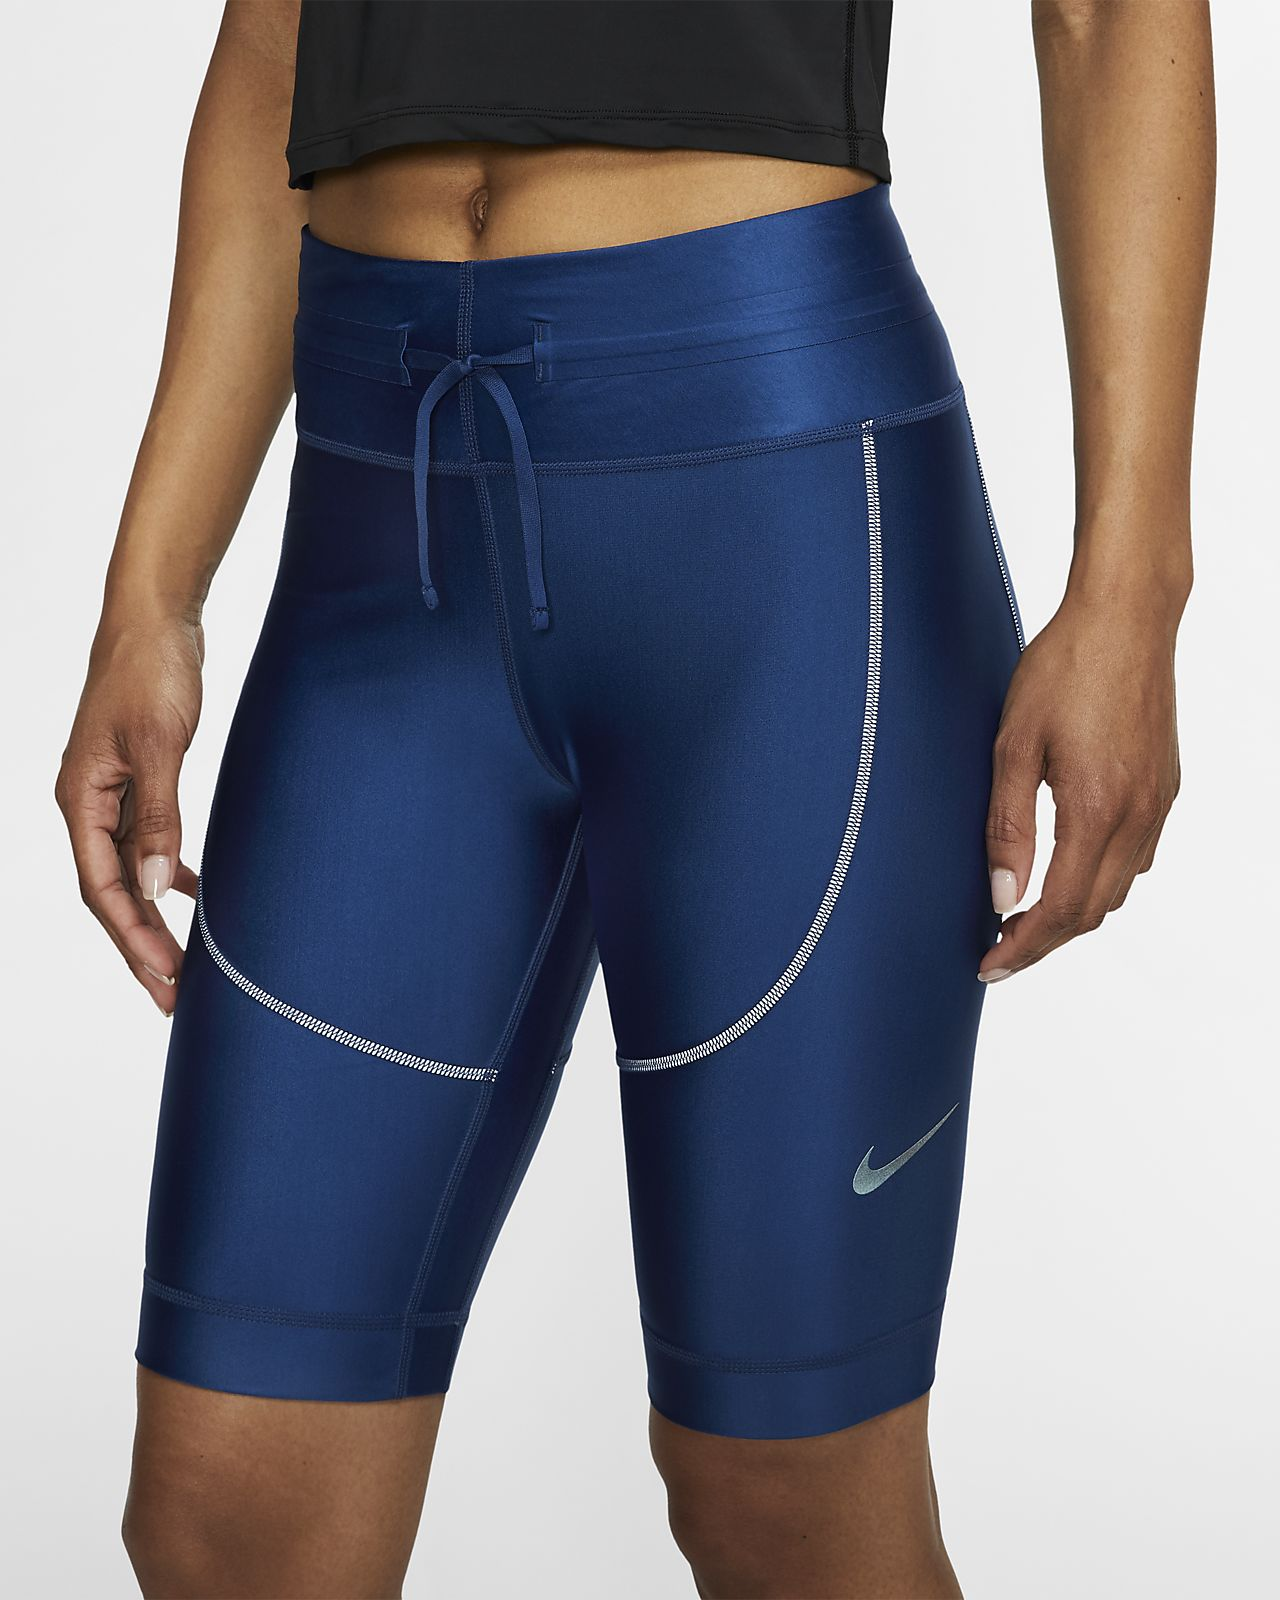 Leggings de running Nike City Ready pour Femme